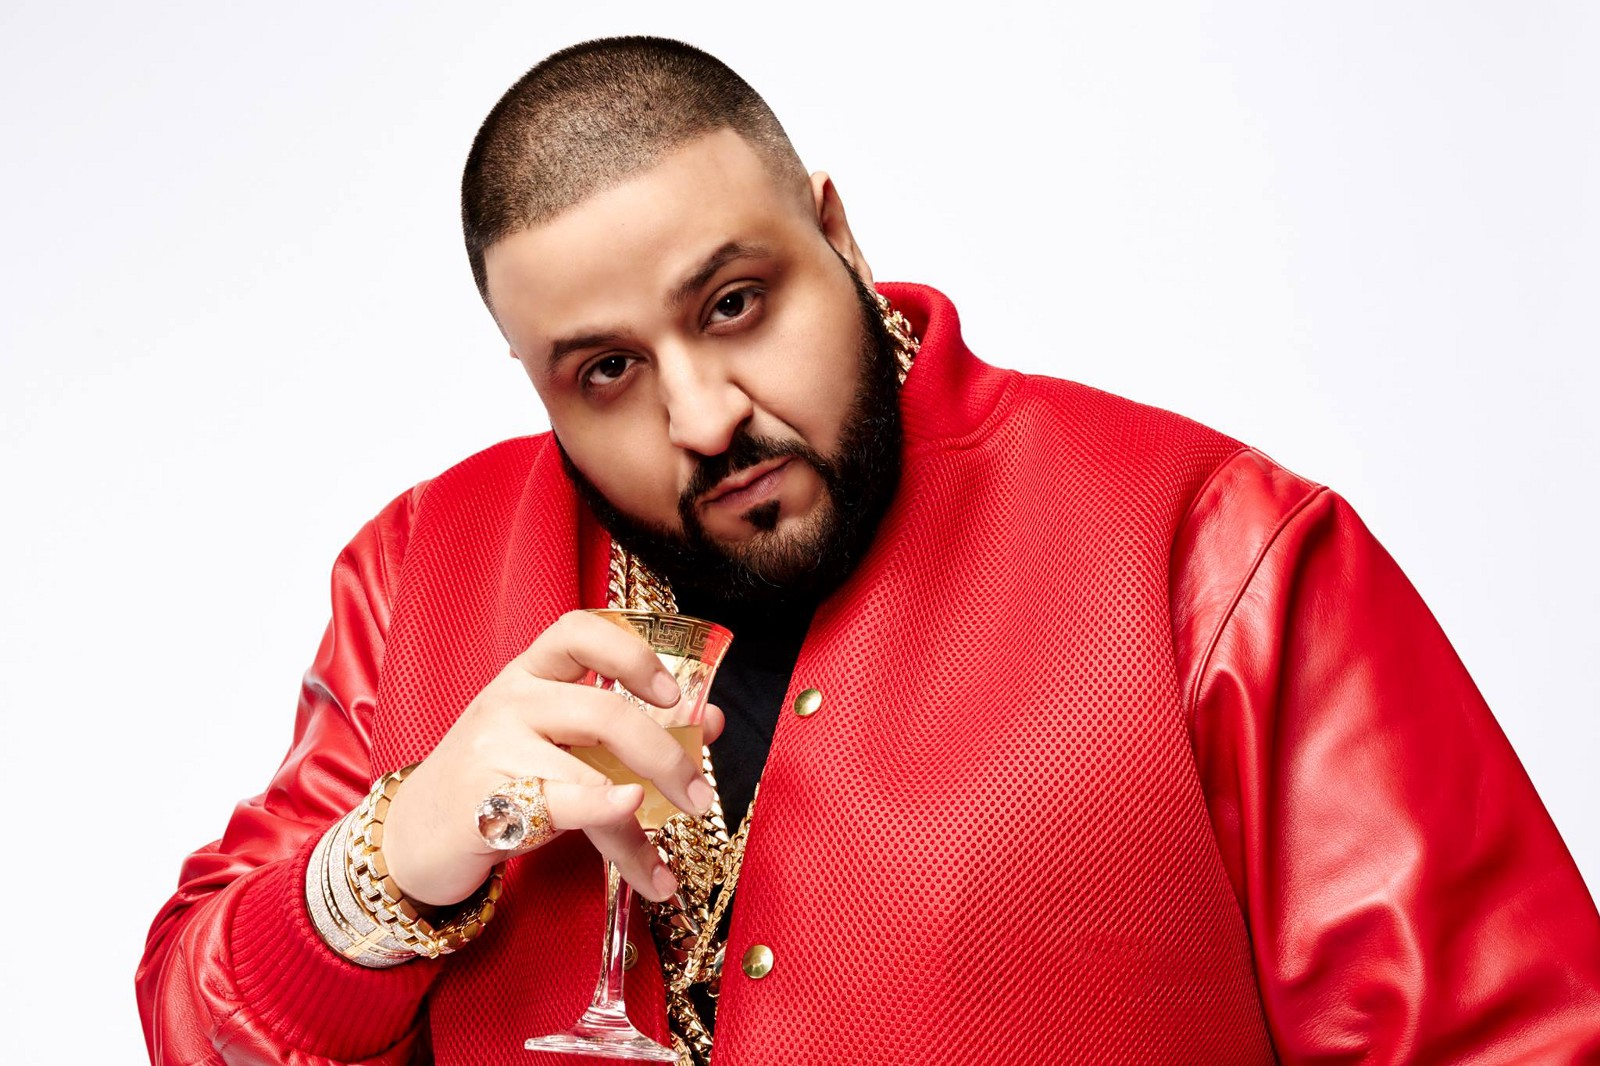 dj-khaled.jpeg